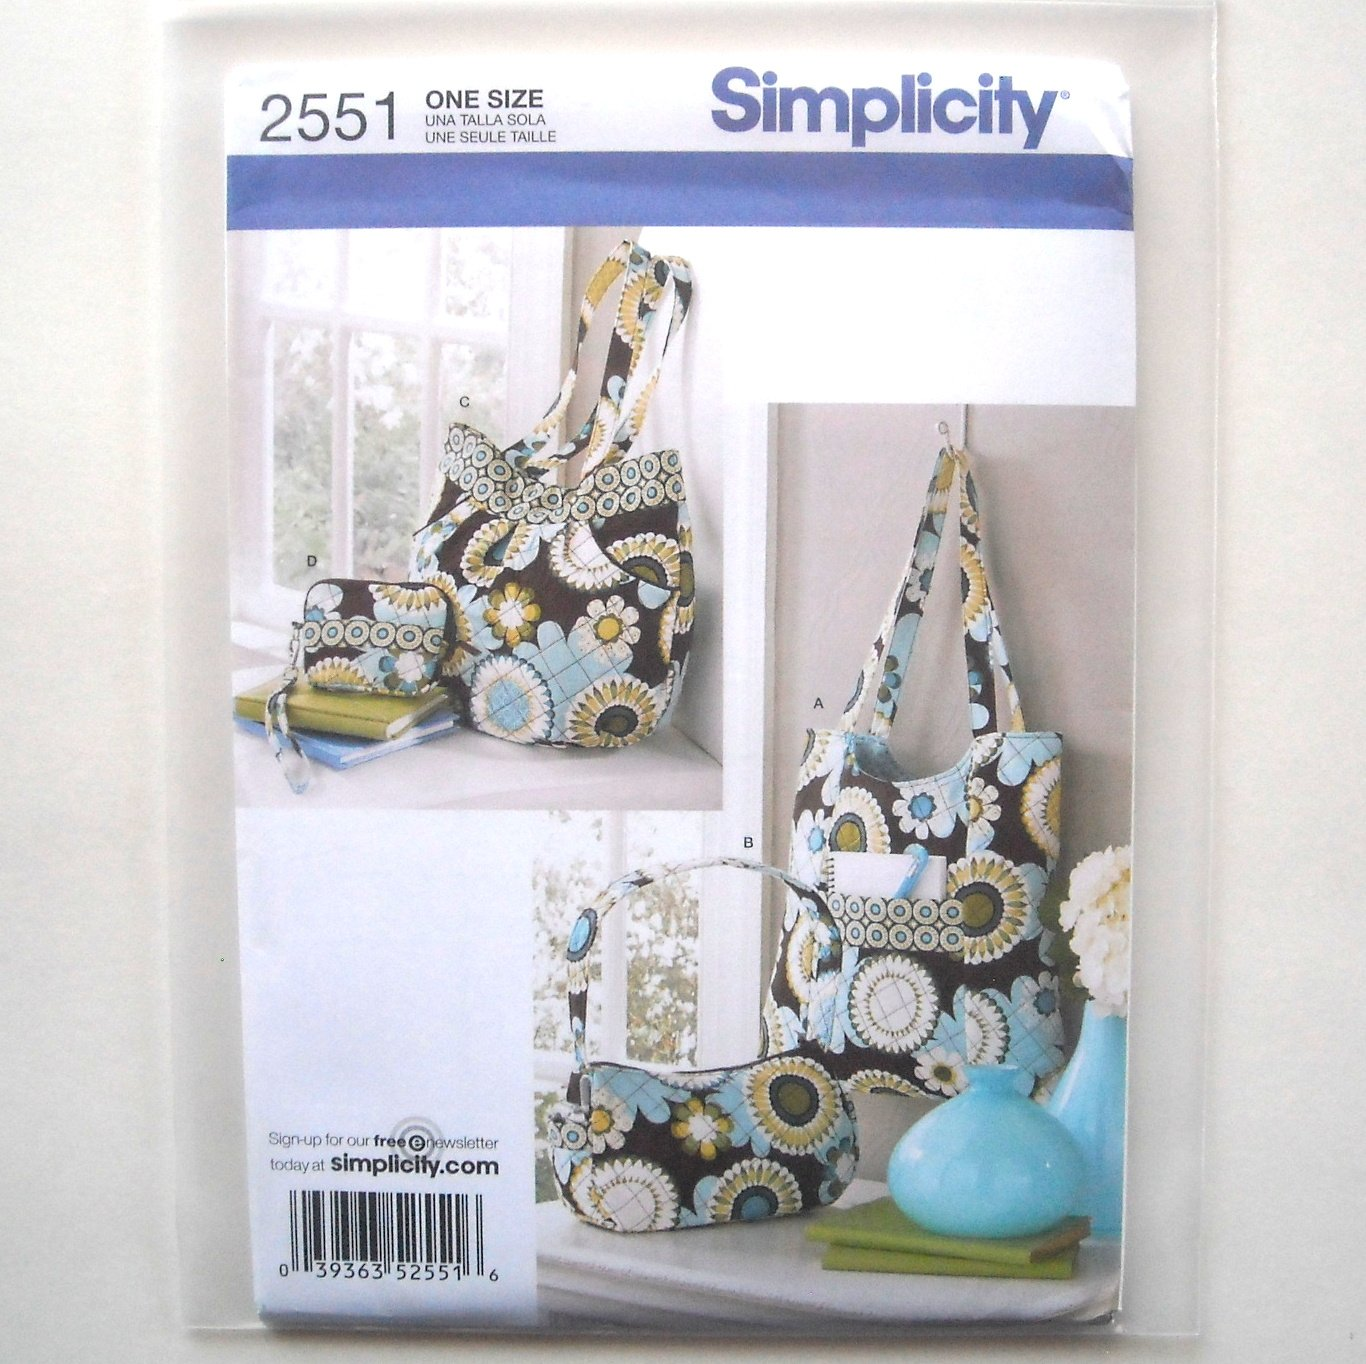 Womens Misses Accessory Bags Simplicity Sewing Pattern 2551